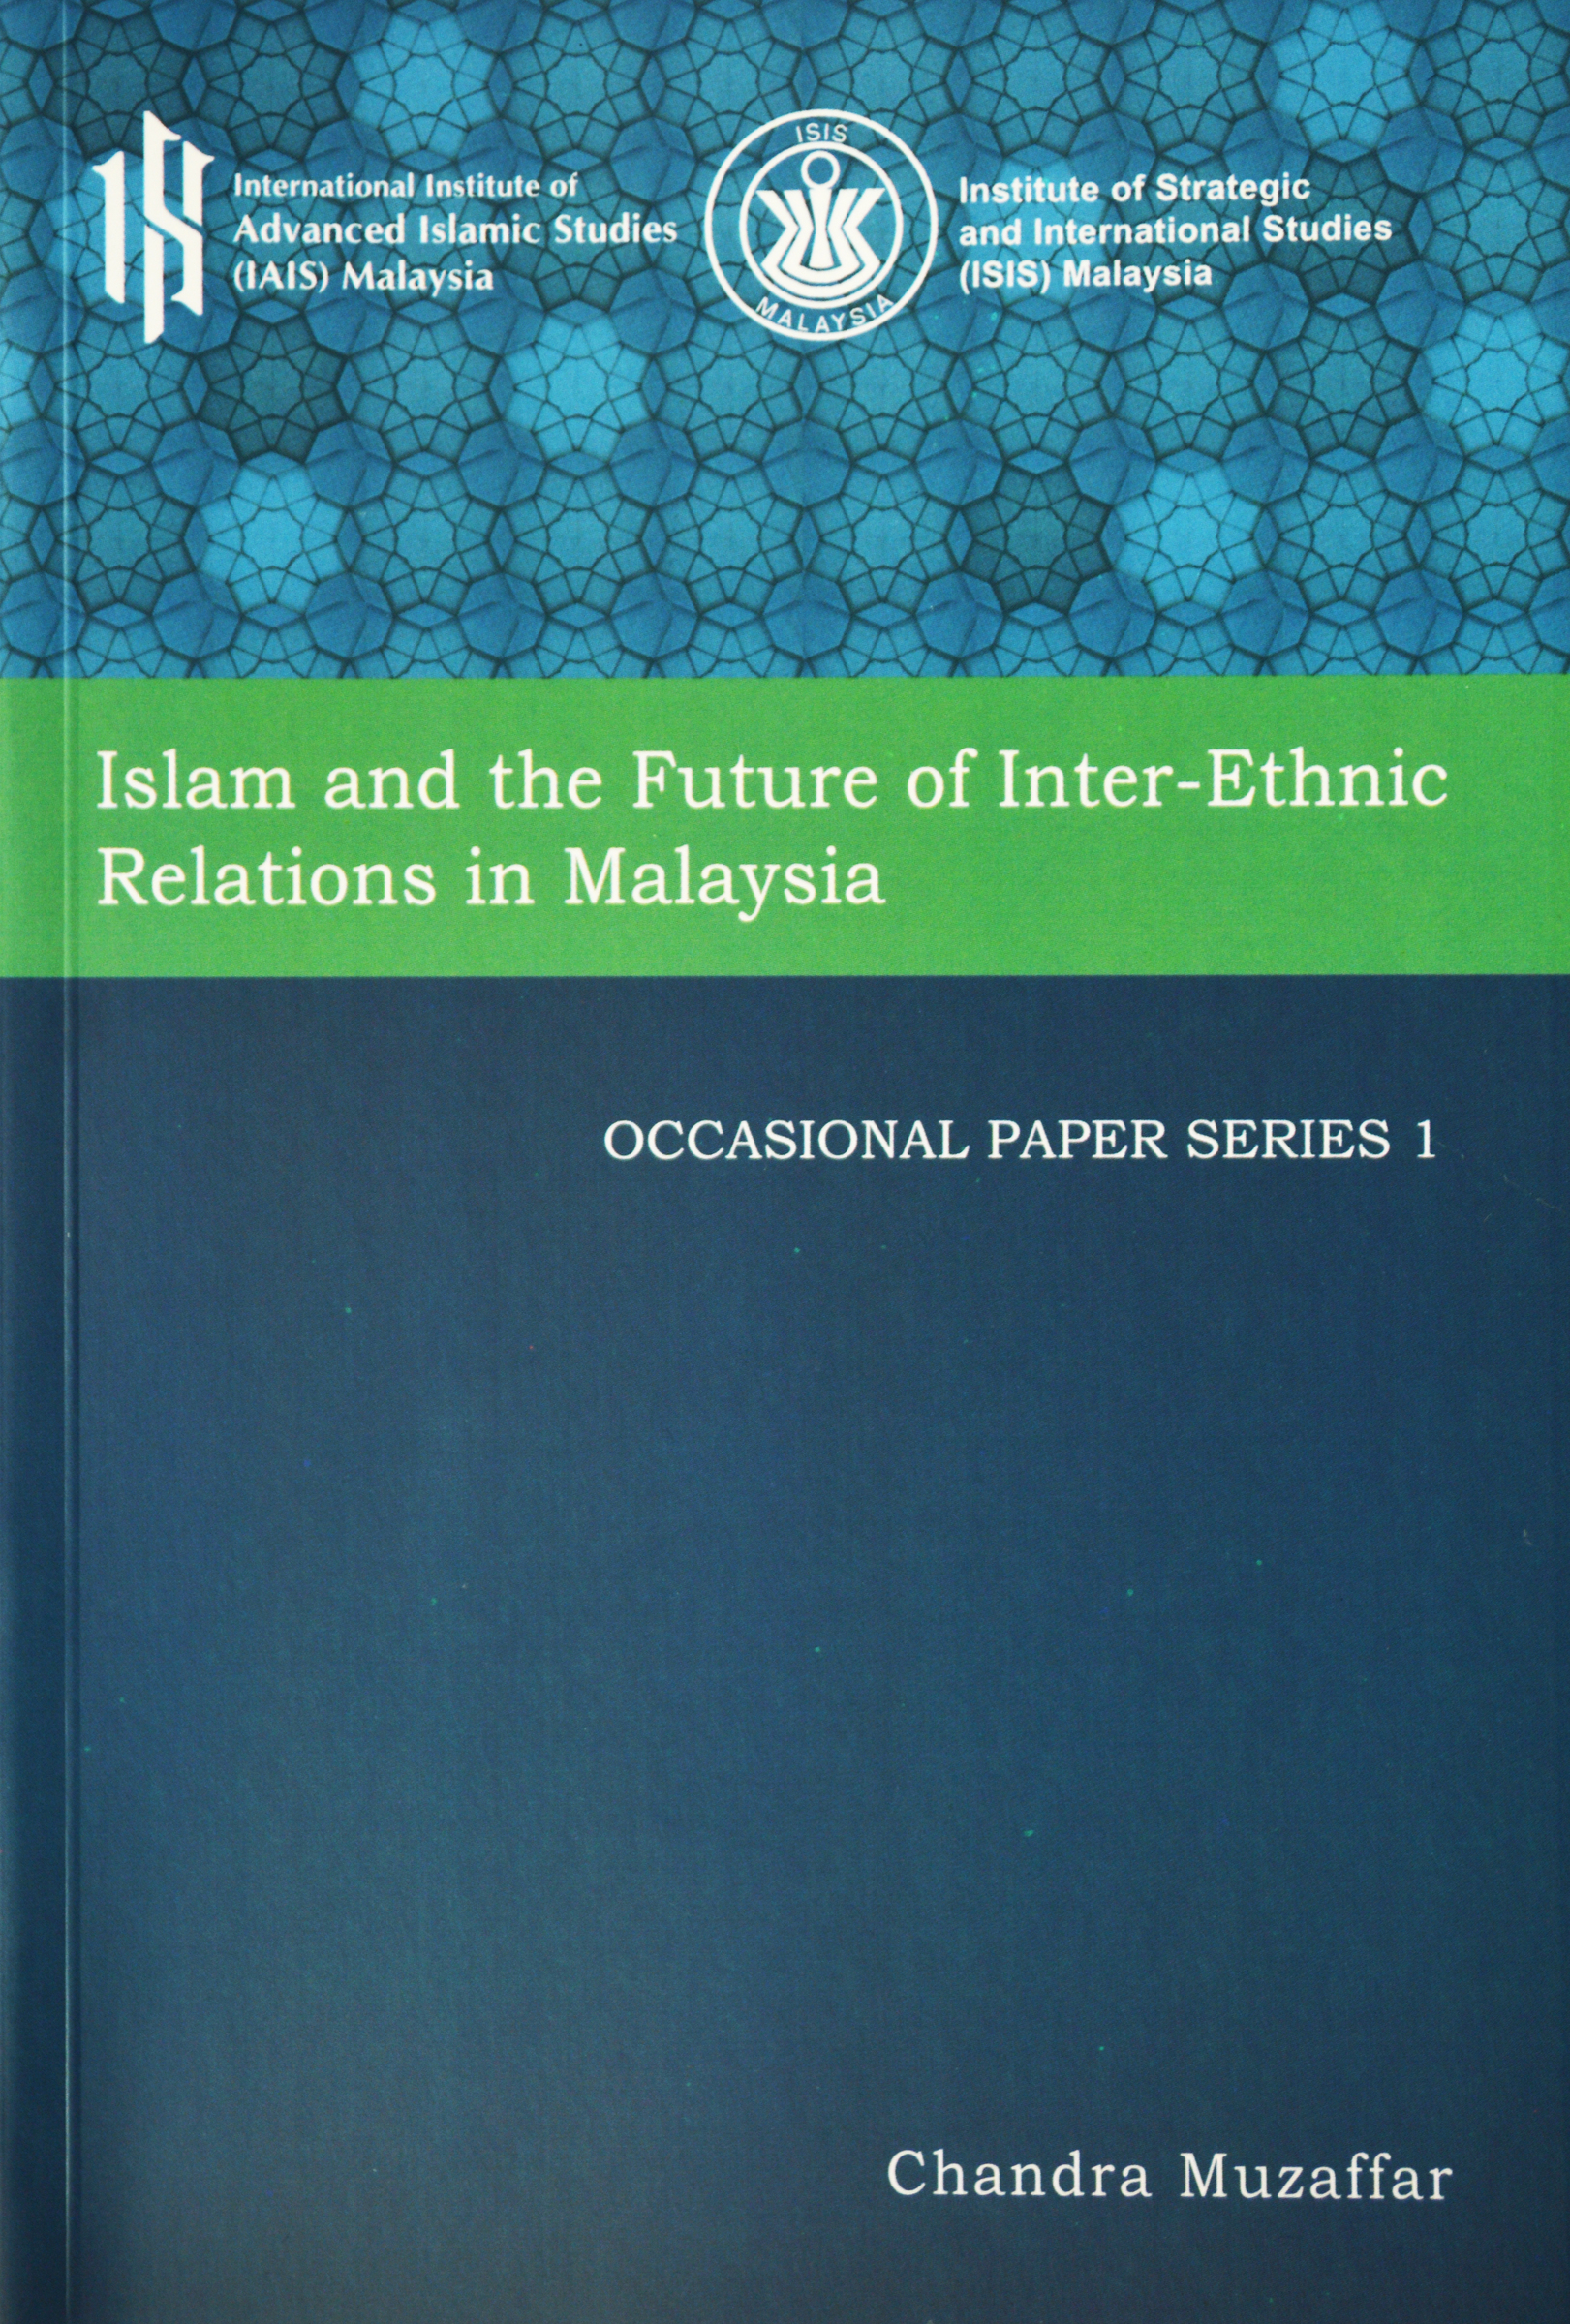 OPS 1 Islam and The Future of Inter-Ethnic Relations.jpg